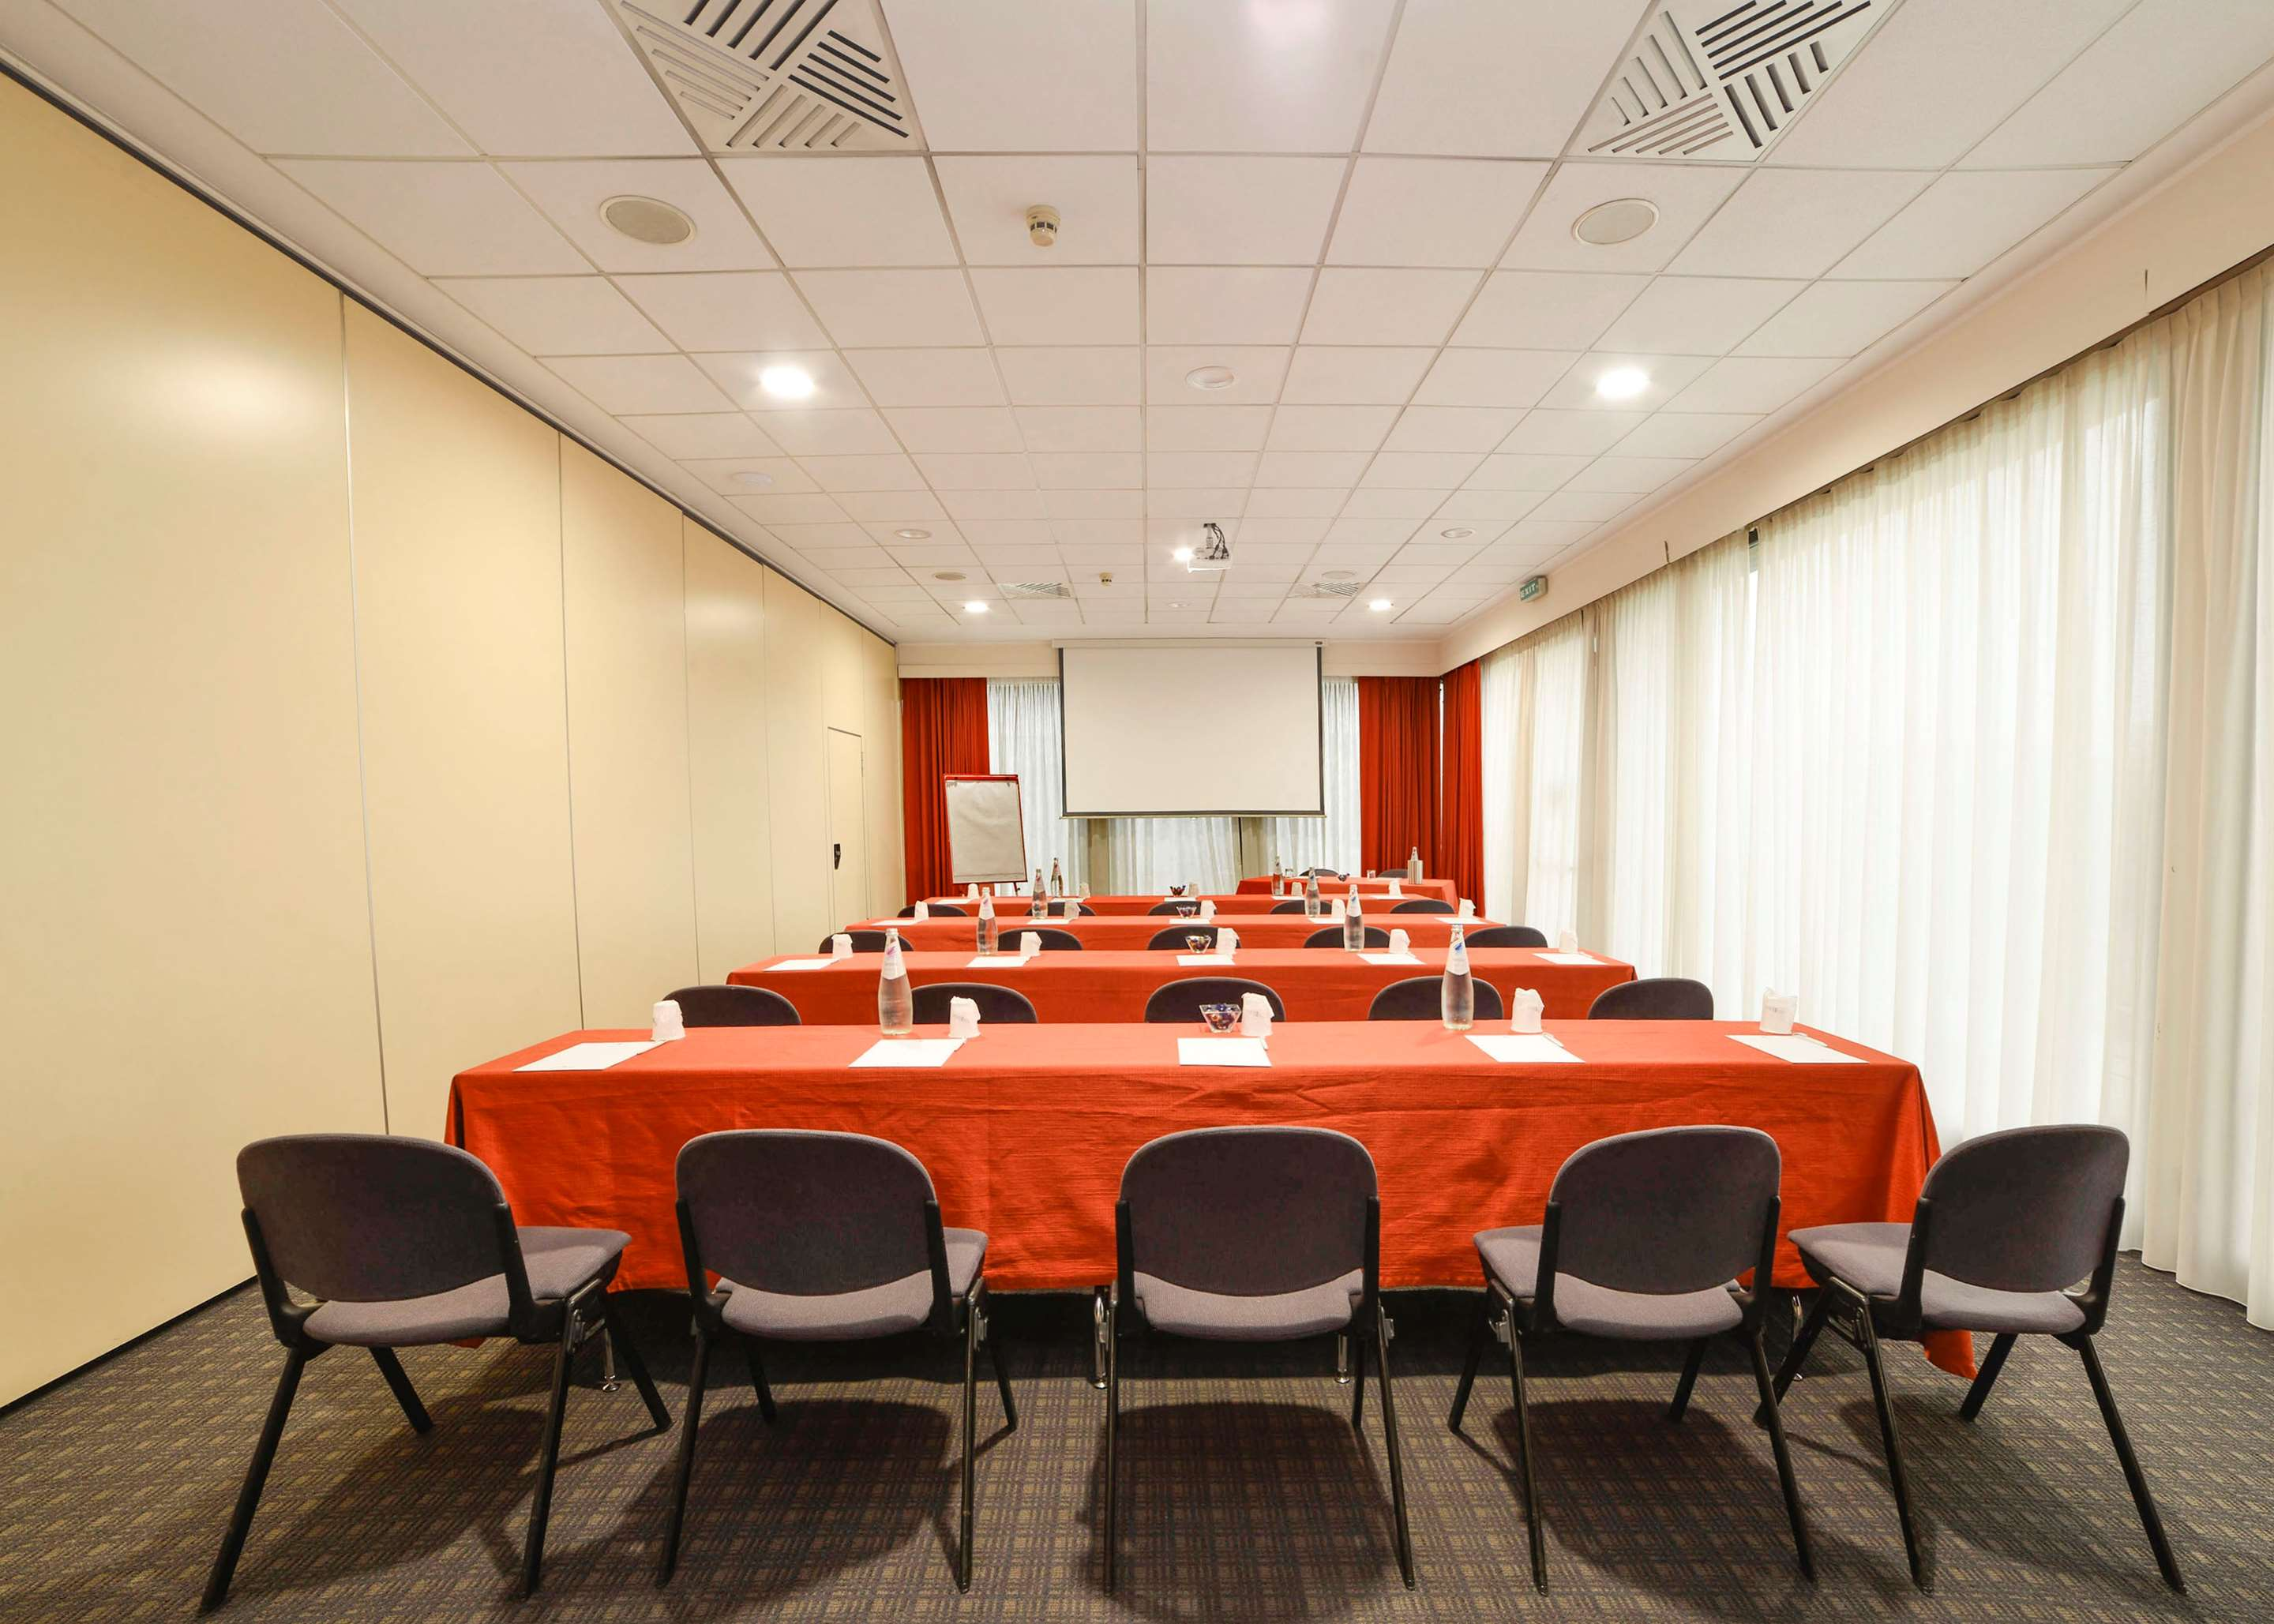 Room : Meeting Room 160 of 390